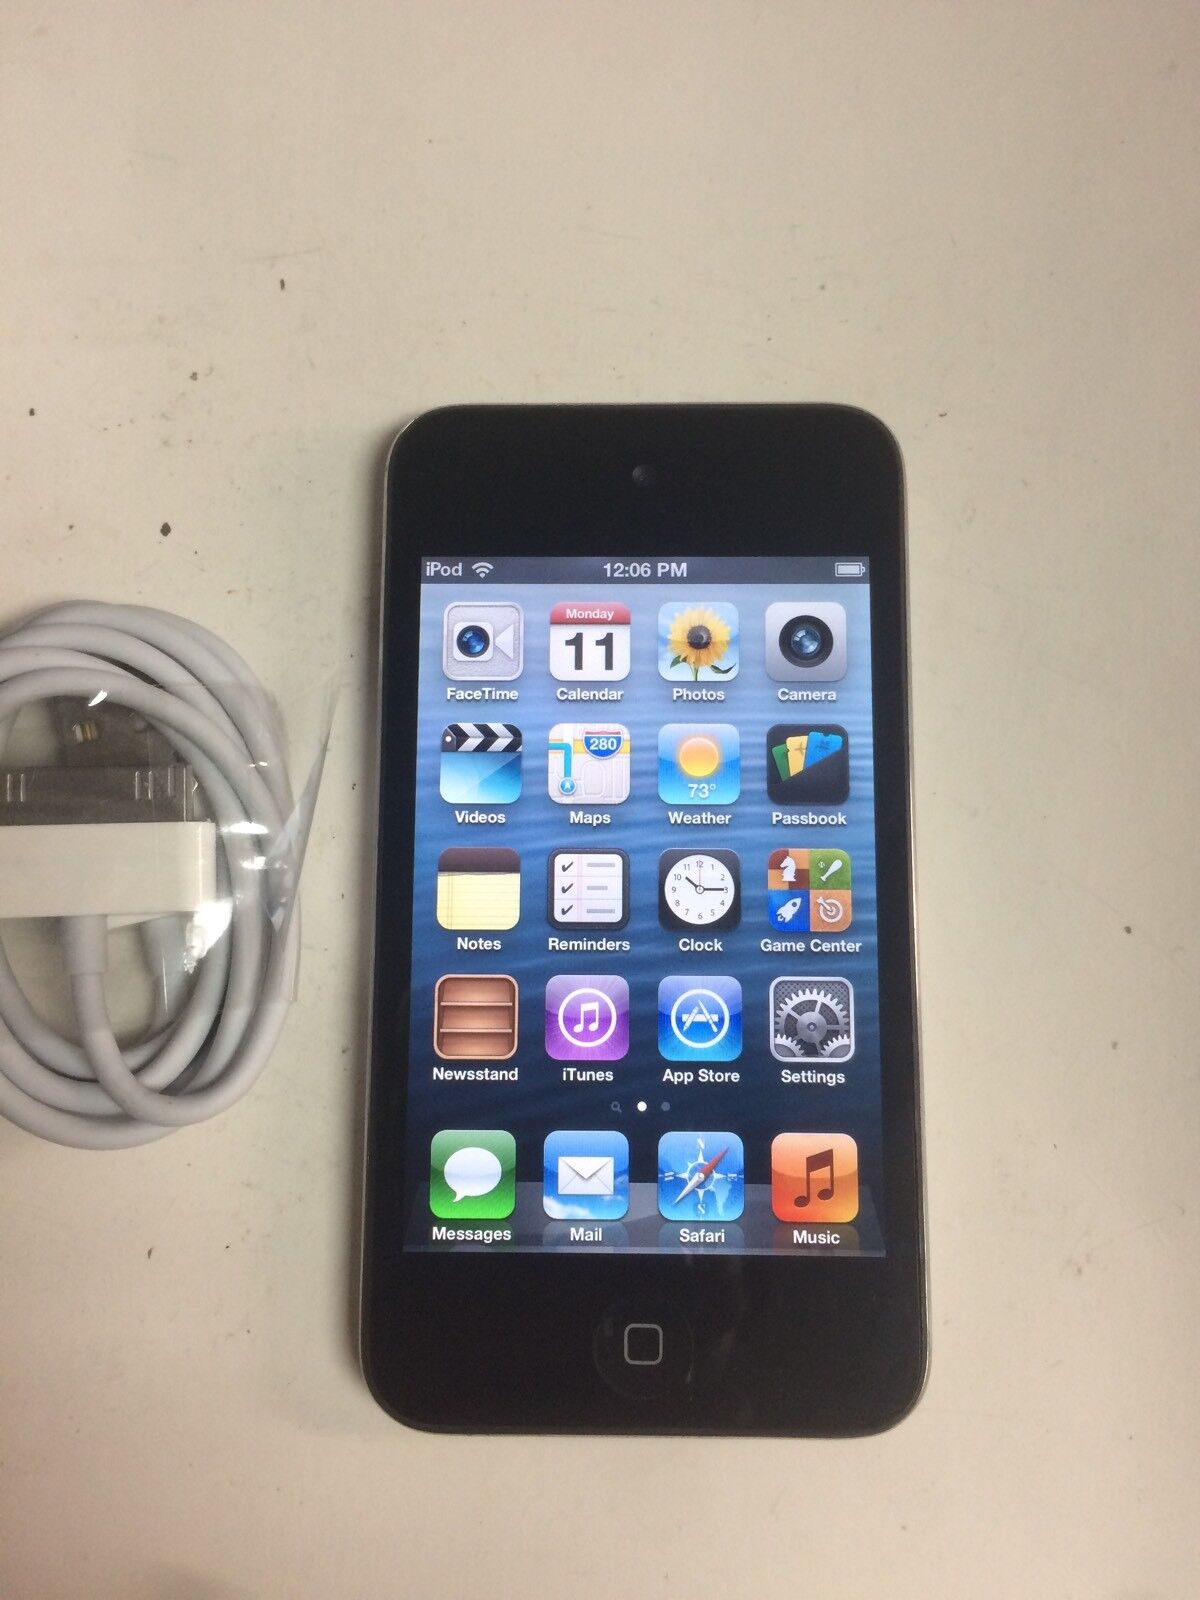 Ipod Touch - Apple iPod touch 4th Generation Black (8 GB) - Good Working Condition - N/C